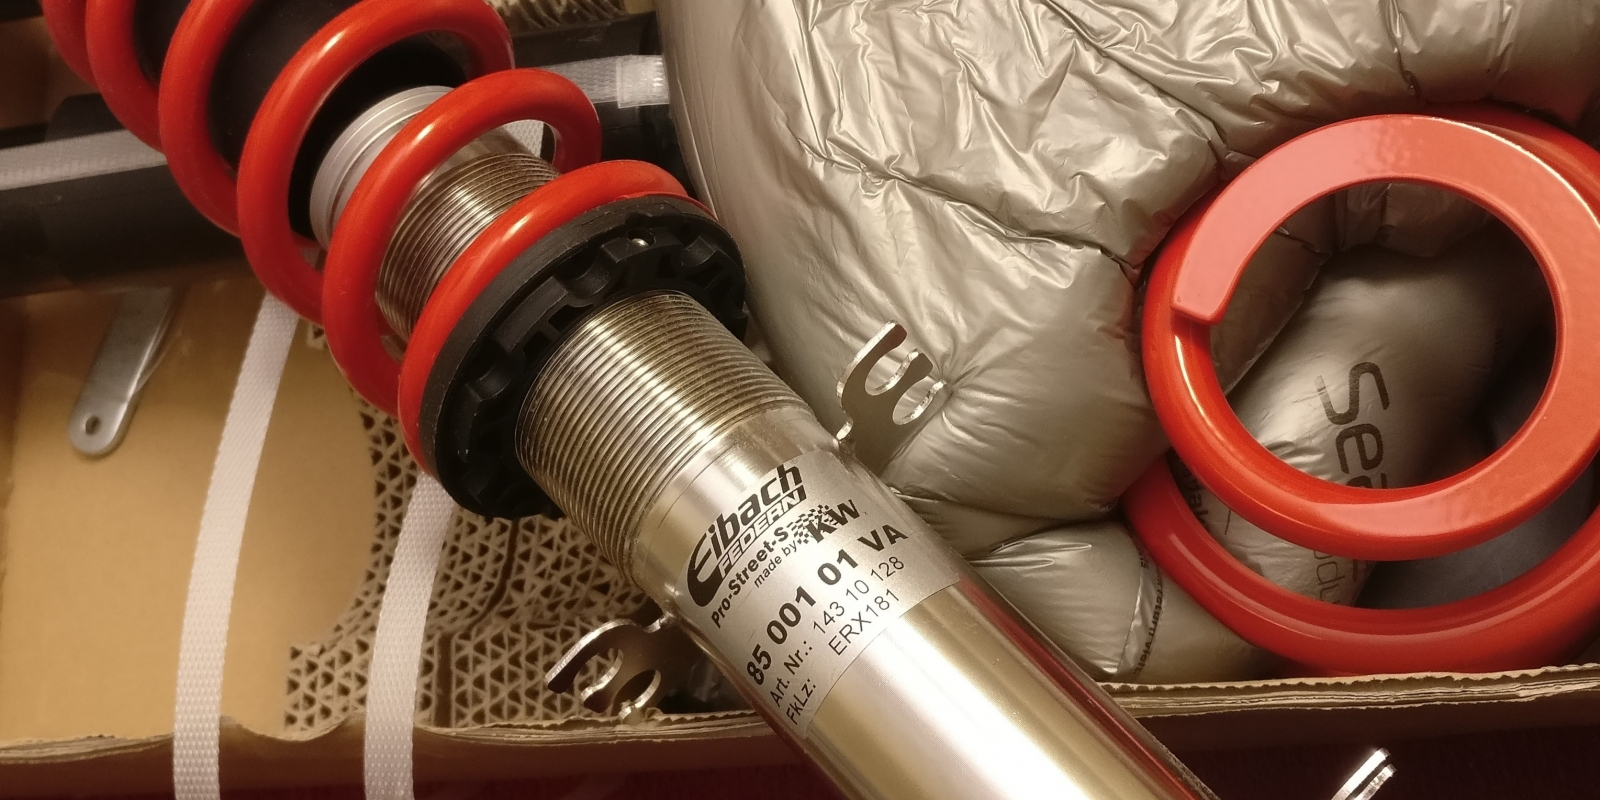 Eibach/KW coilover in the box with packaging